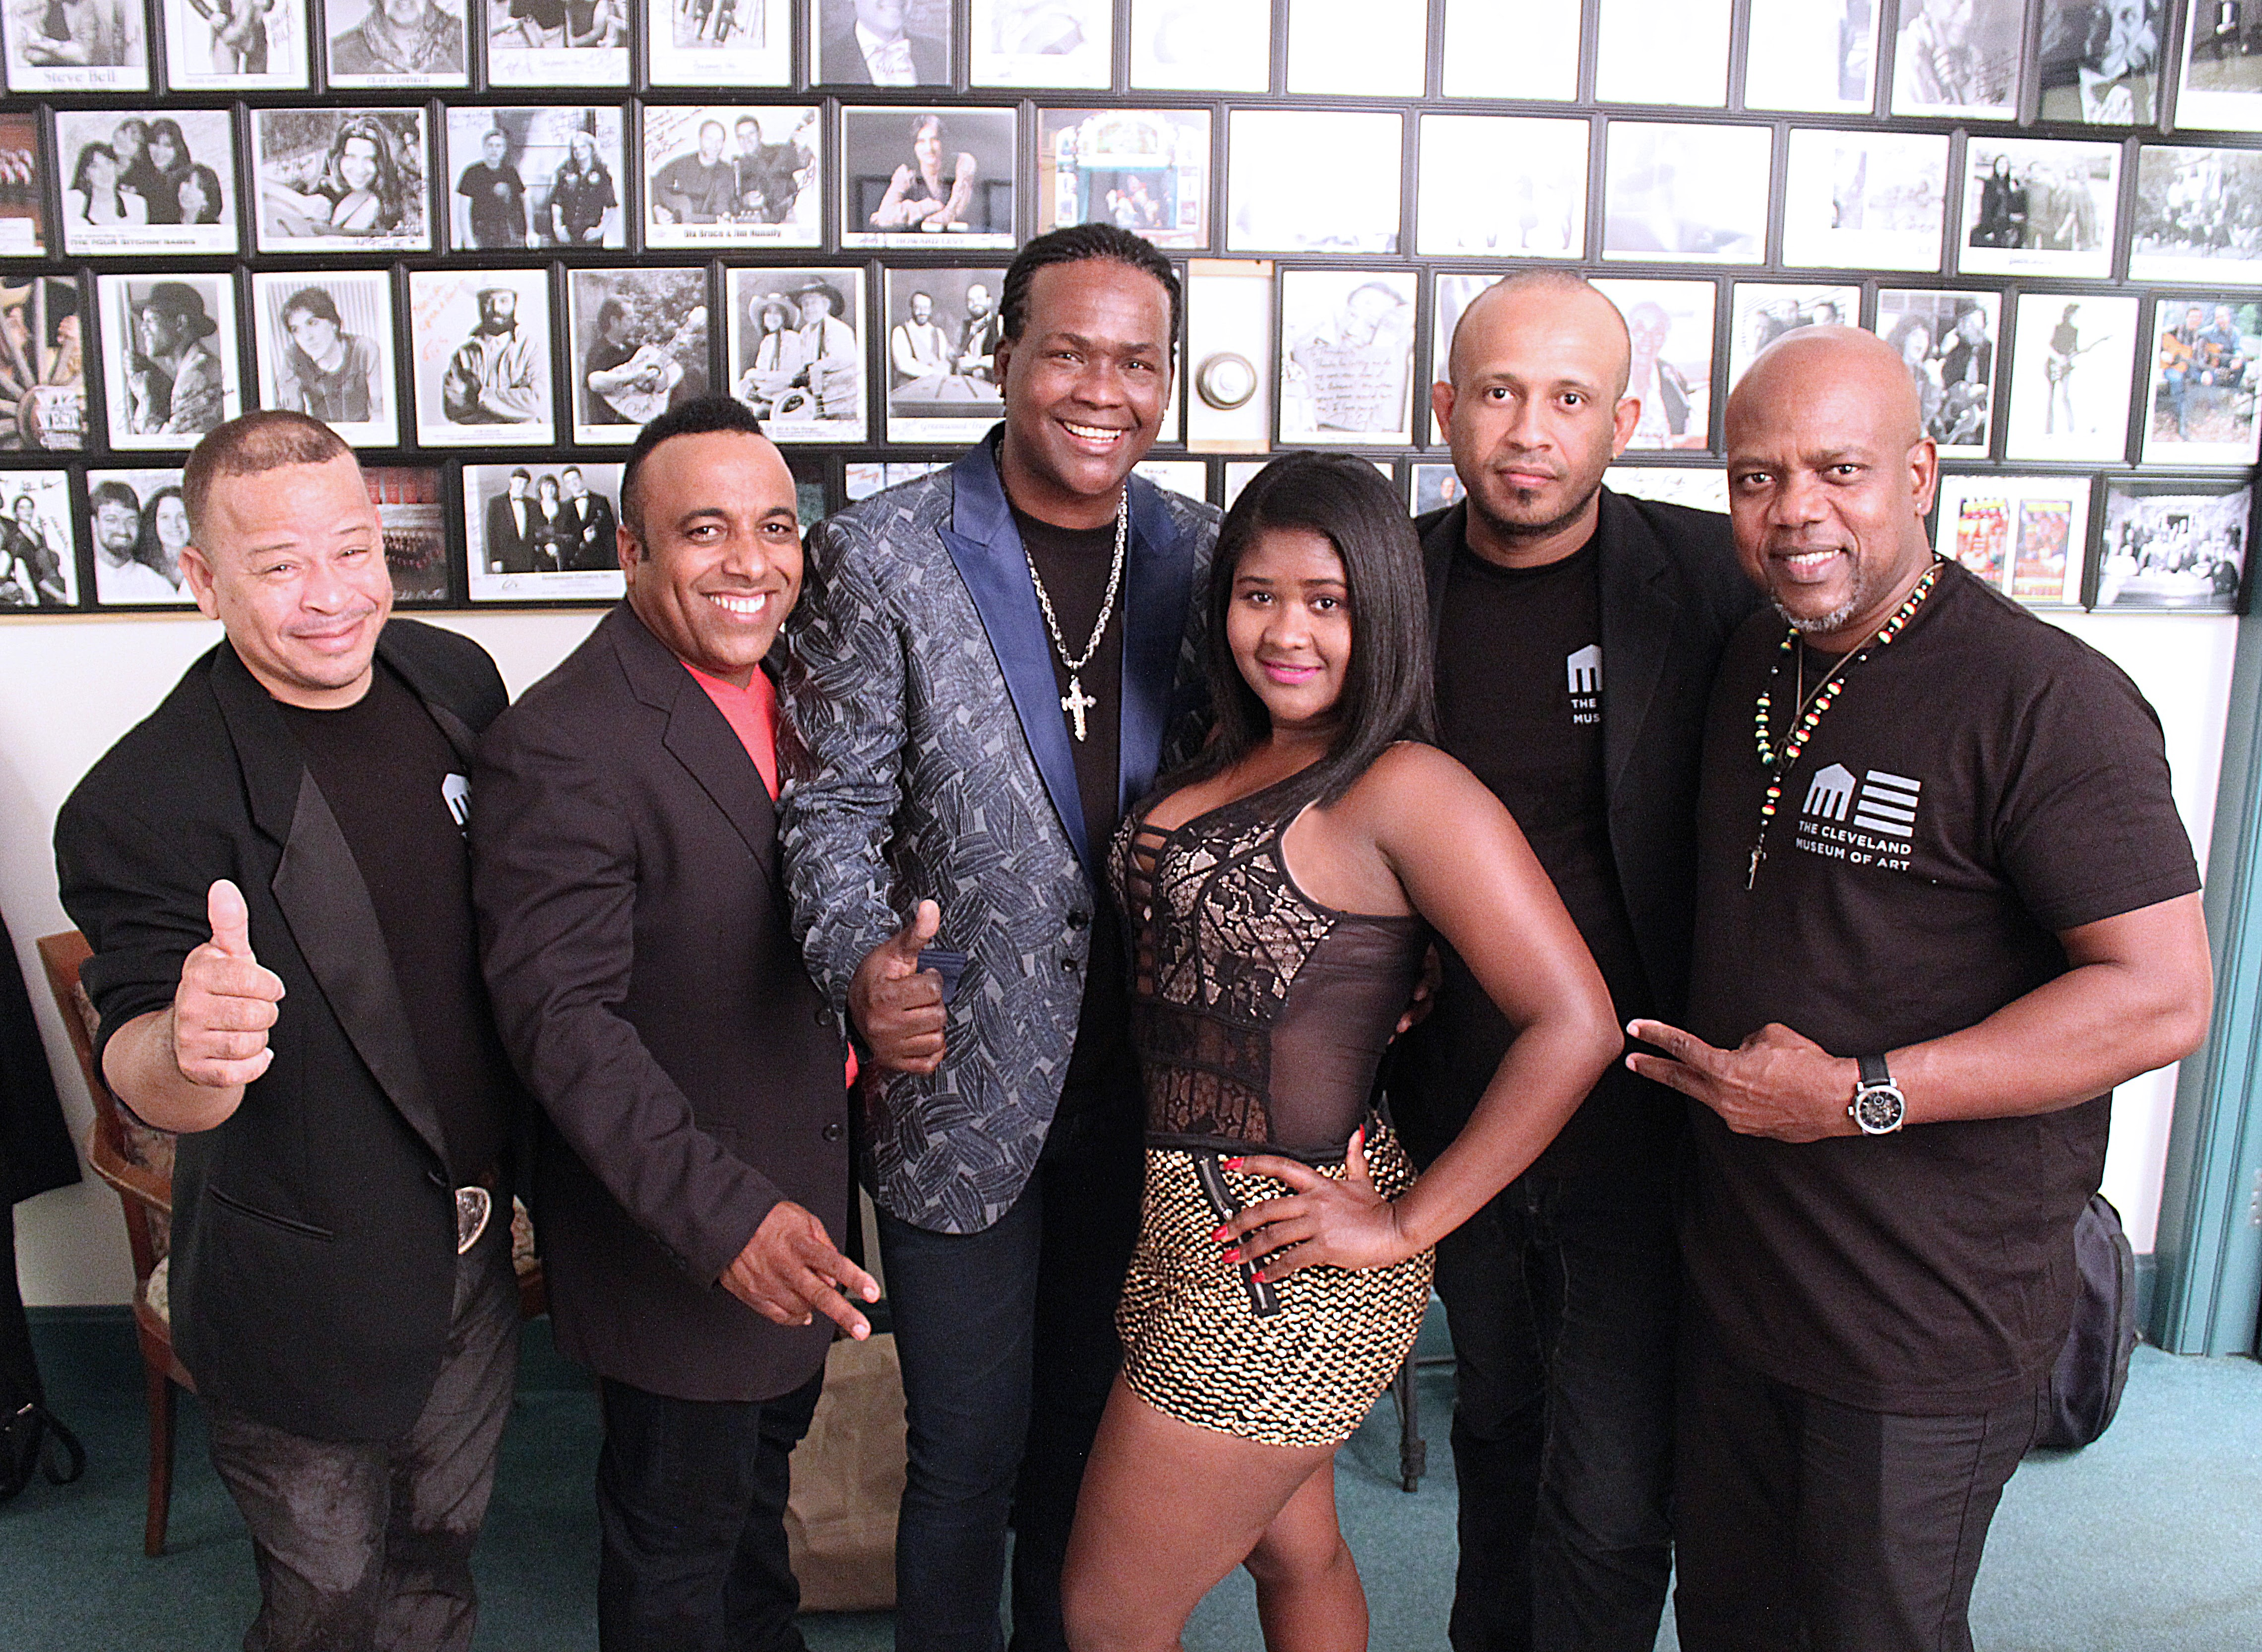 Joan Soriano with his band backstage